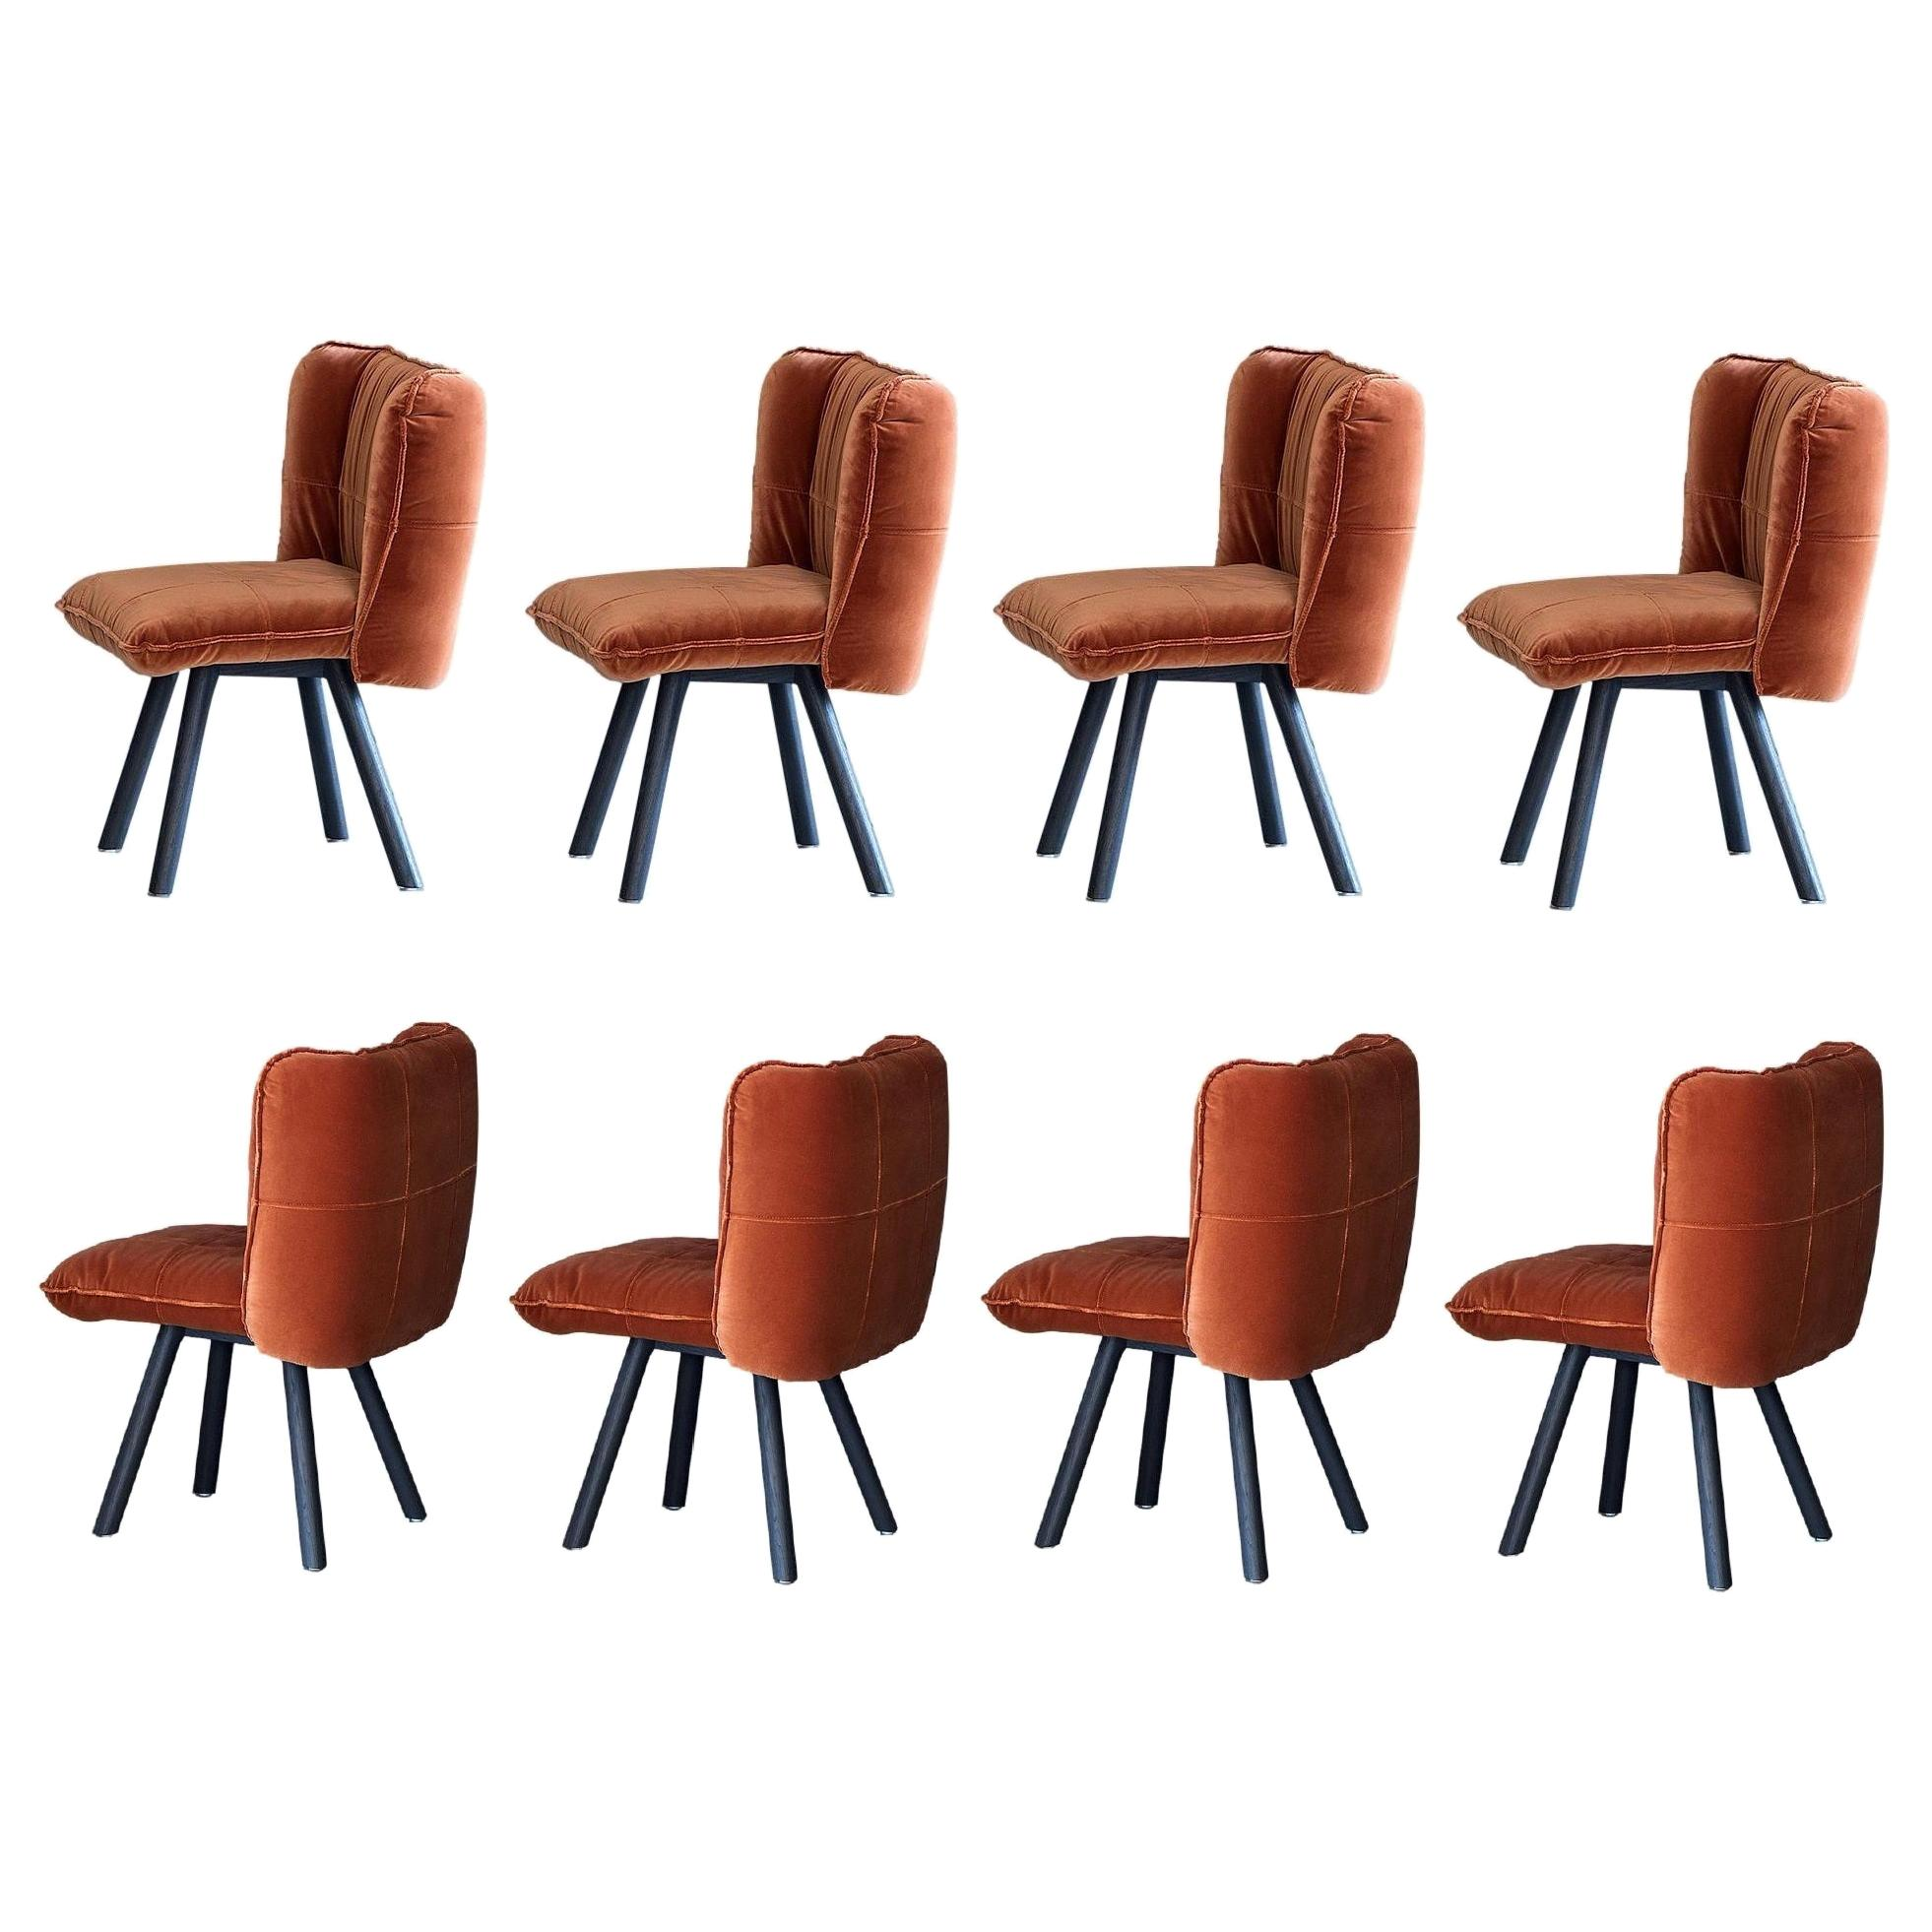 Contemporary Dining Set of 8 Chairs Crafted from American Oak